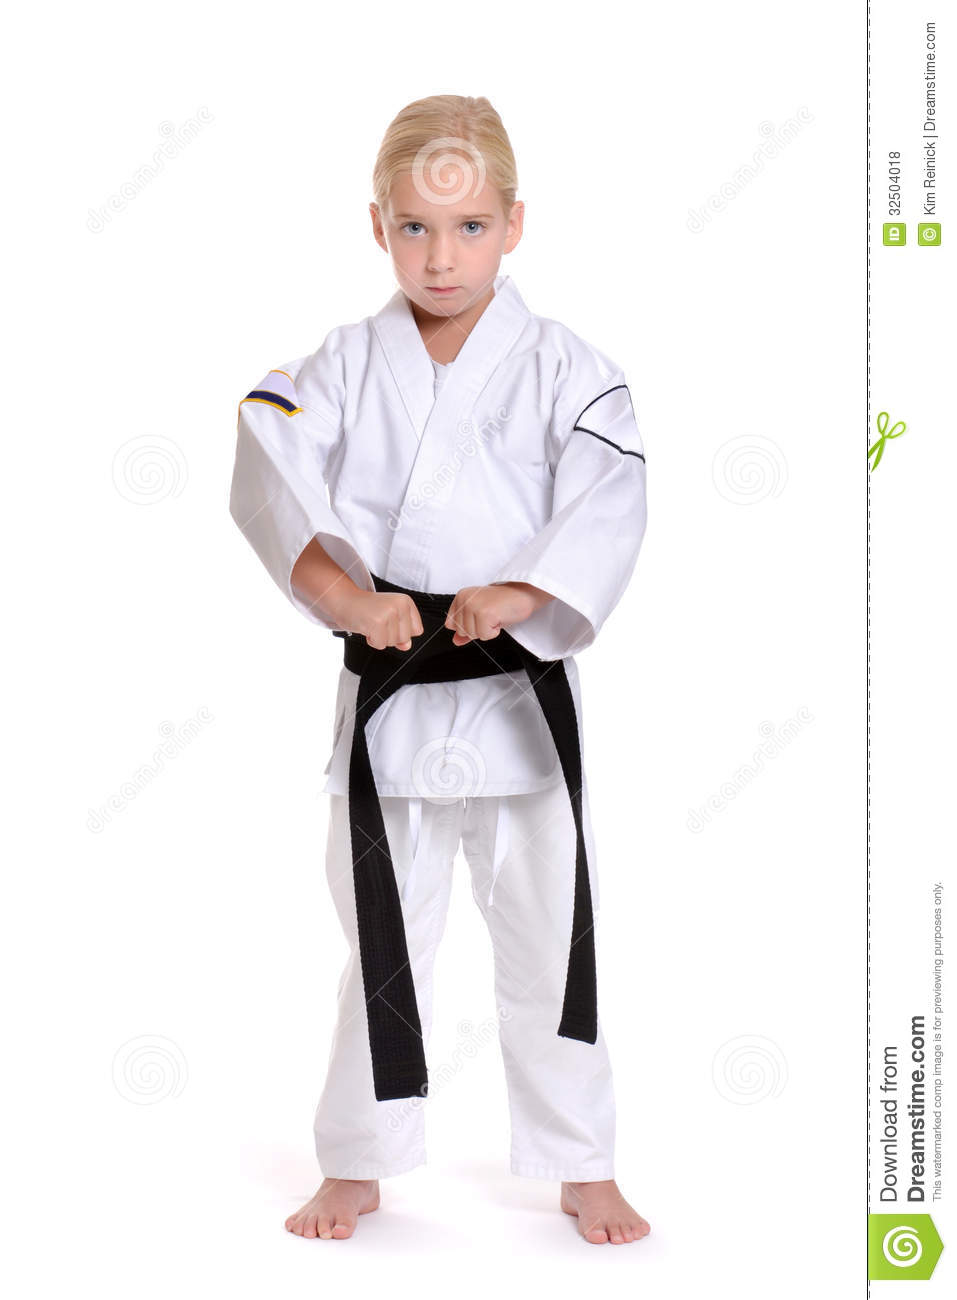 Royalty Free Stock Photos Karate Girl Uniform White Background Image32504018 also Royalty Free Stock Photos Baby Doll Image11336188 also 3d Gym Floor Plan Design together with Art Nouveau Jugendstil Vienna together with Teletubbies Childrens Pre School. on young house interior design